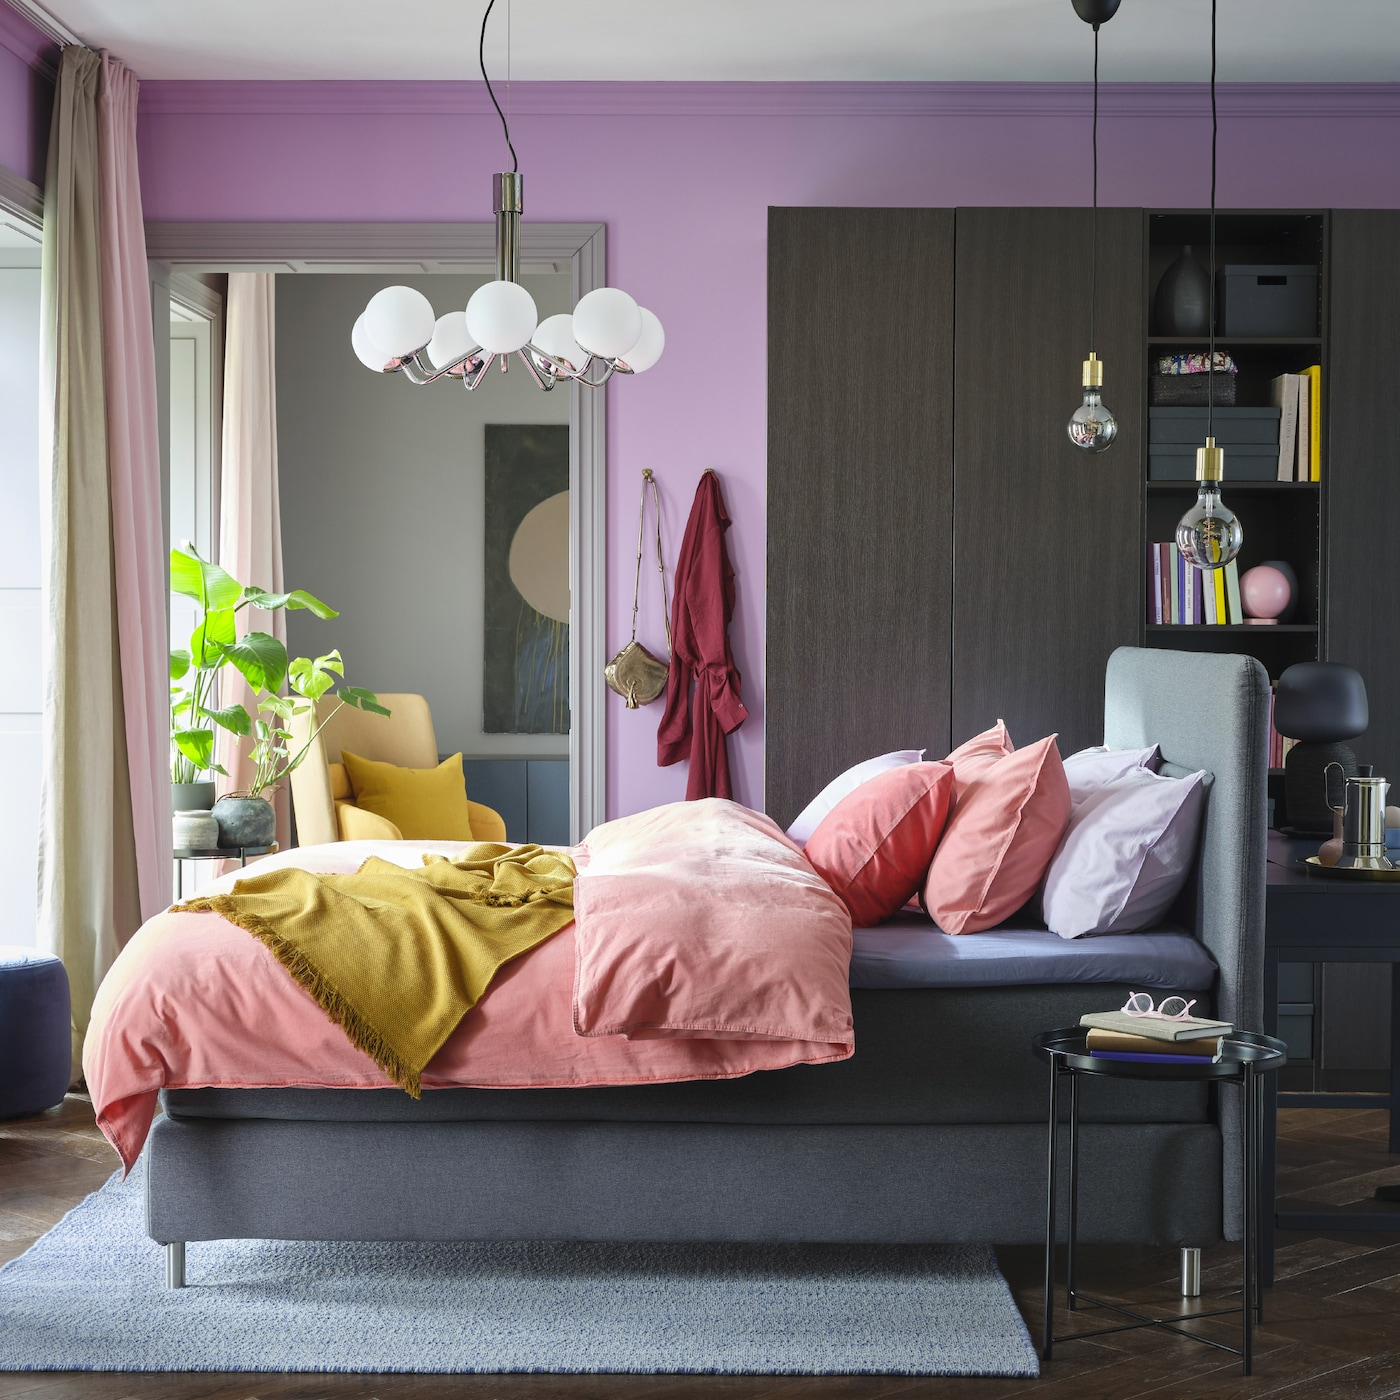 Letti A Scomparsa Ikea furnishing ideas & inspiration for your bedroom - ikea